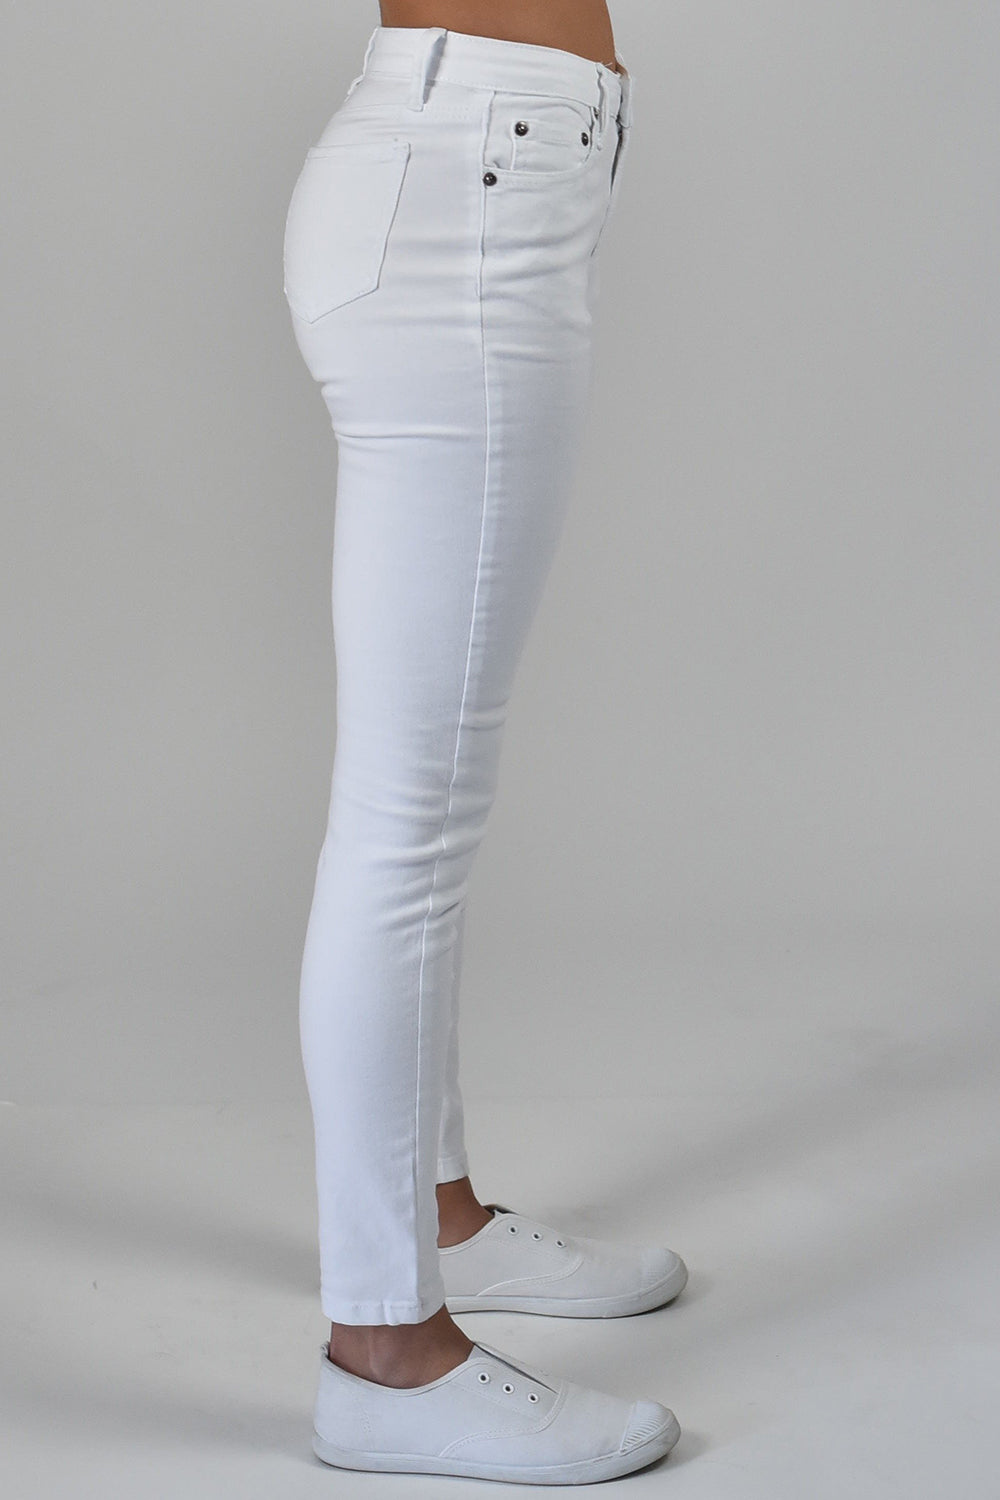 Carousel Essentials / Twiggy Jean / White